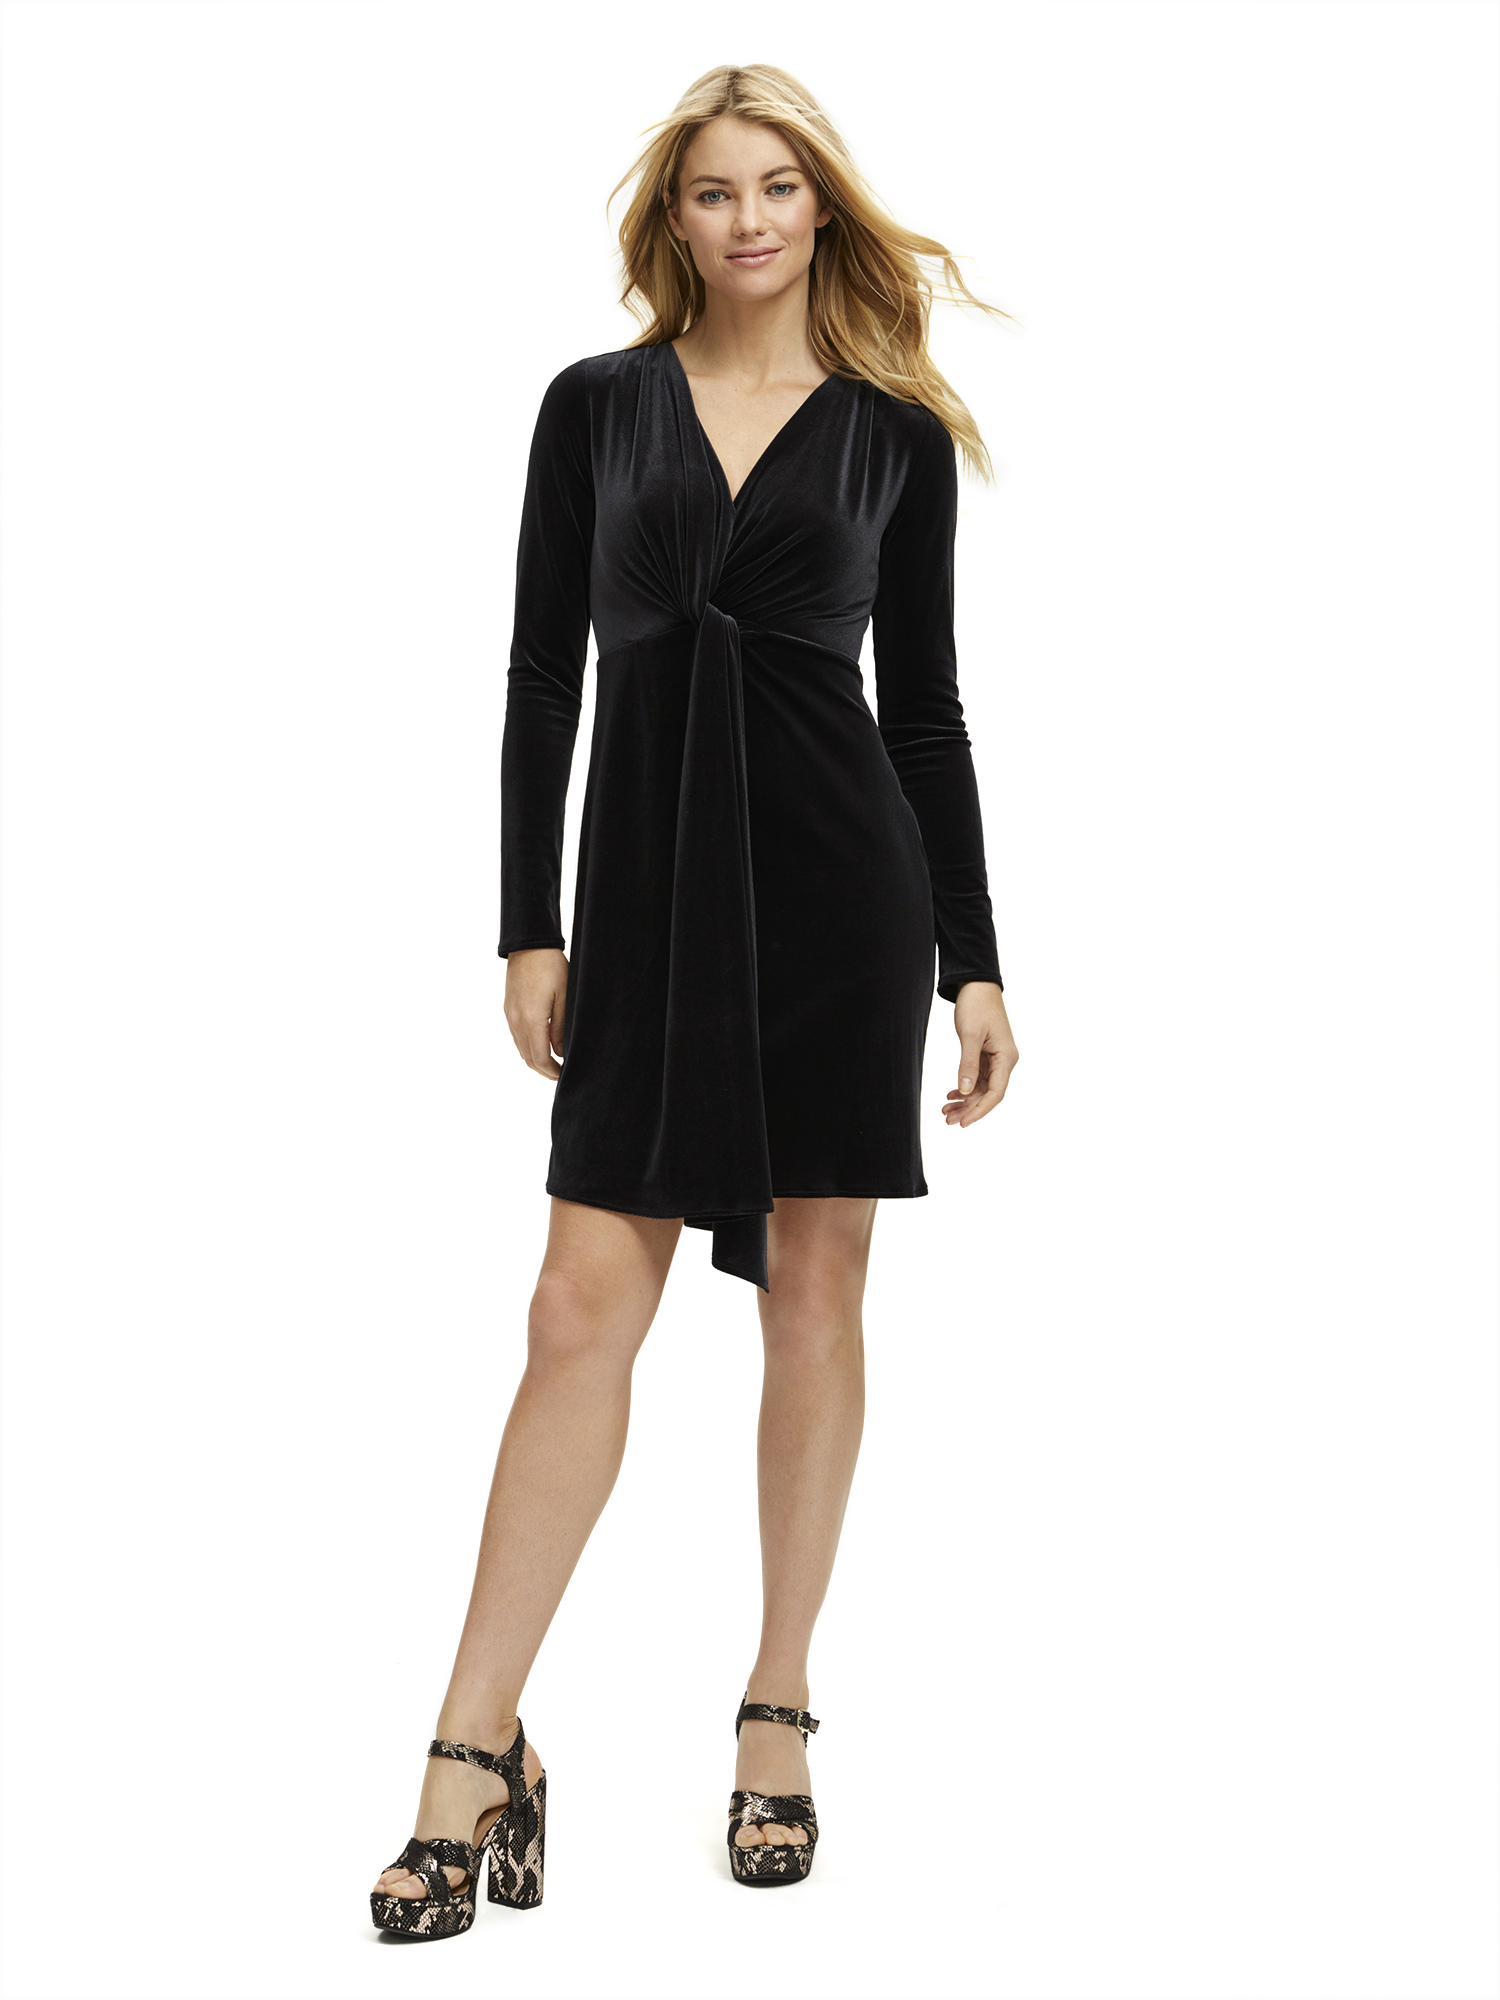 Scoop Women's Soft Stretch Velvet Drape Dress by Scoop